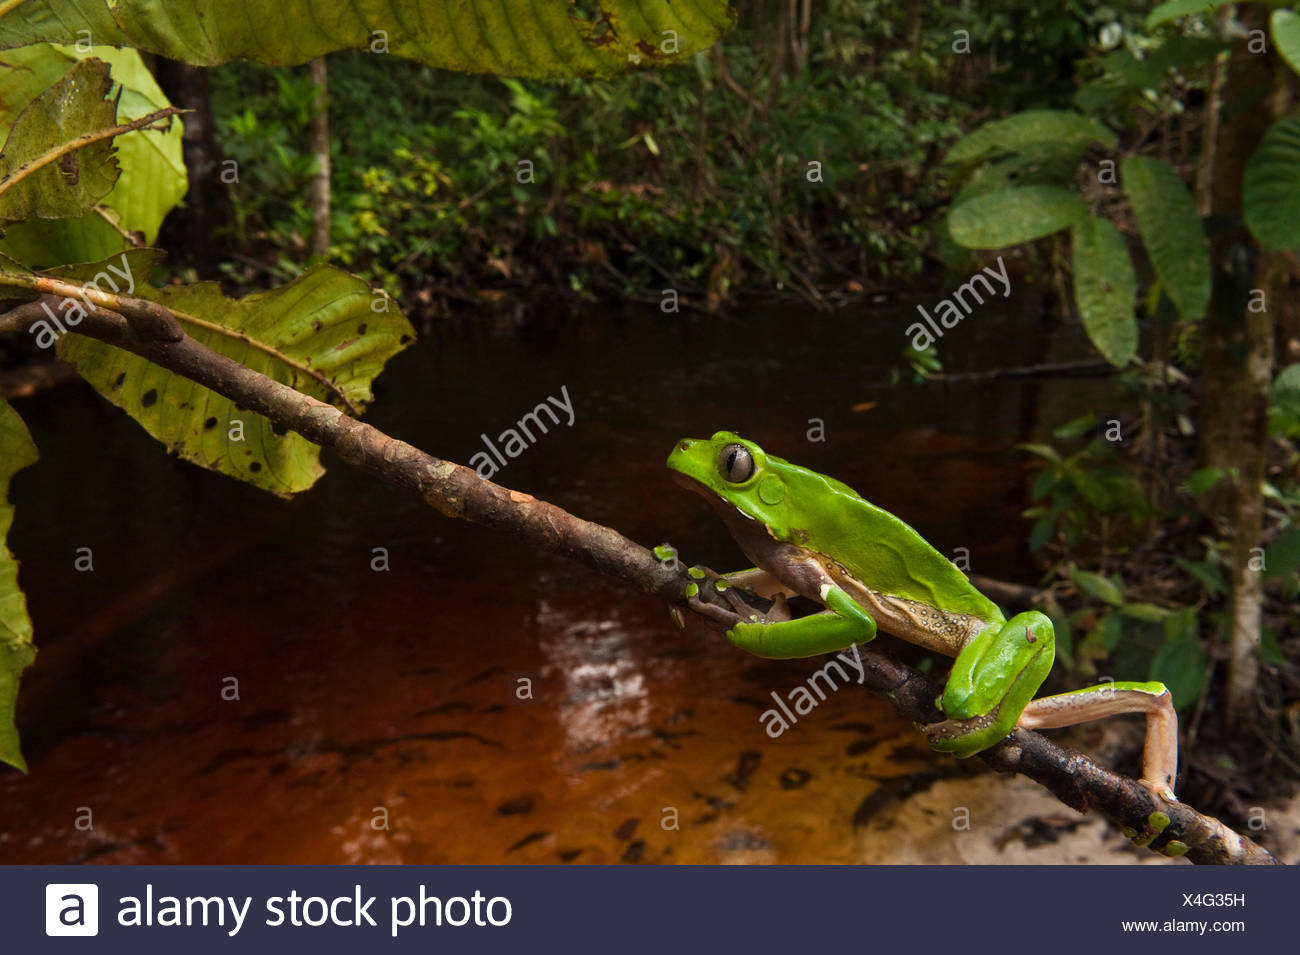 Giant leaf frog (Phyllomedusa bicolor) climbing along branch in rainforest, Iwokrama Reserve, Guyana Stock Photo